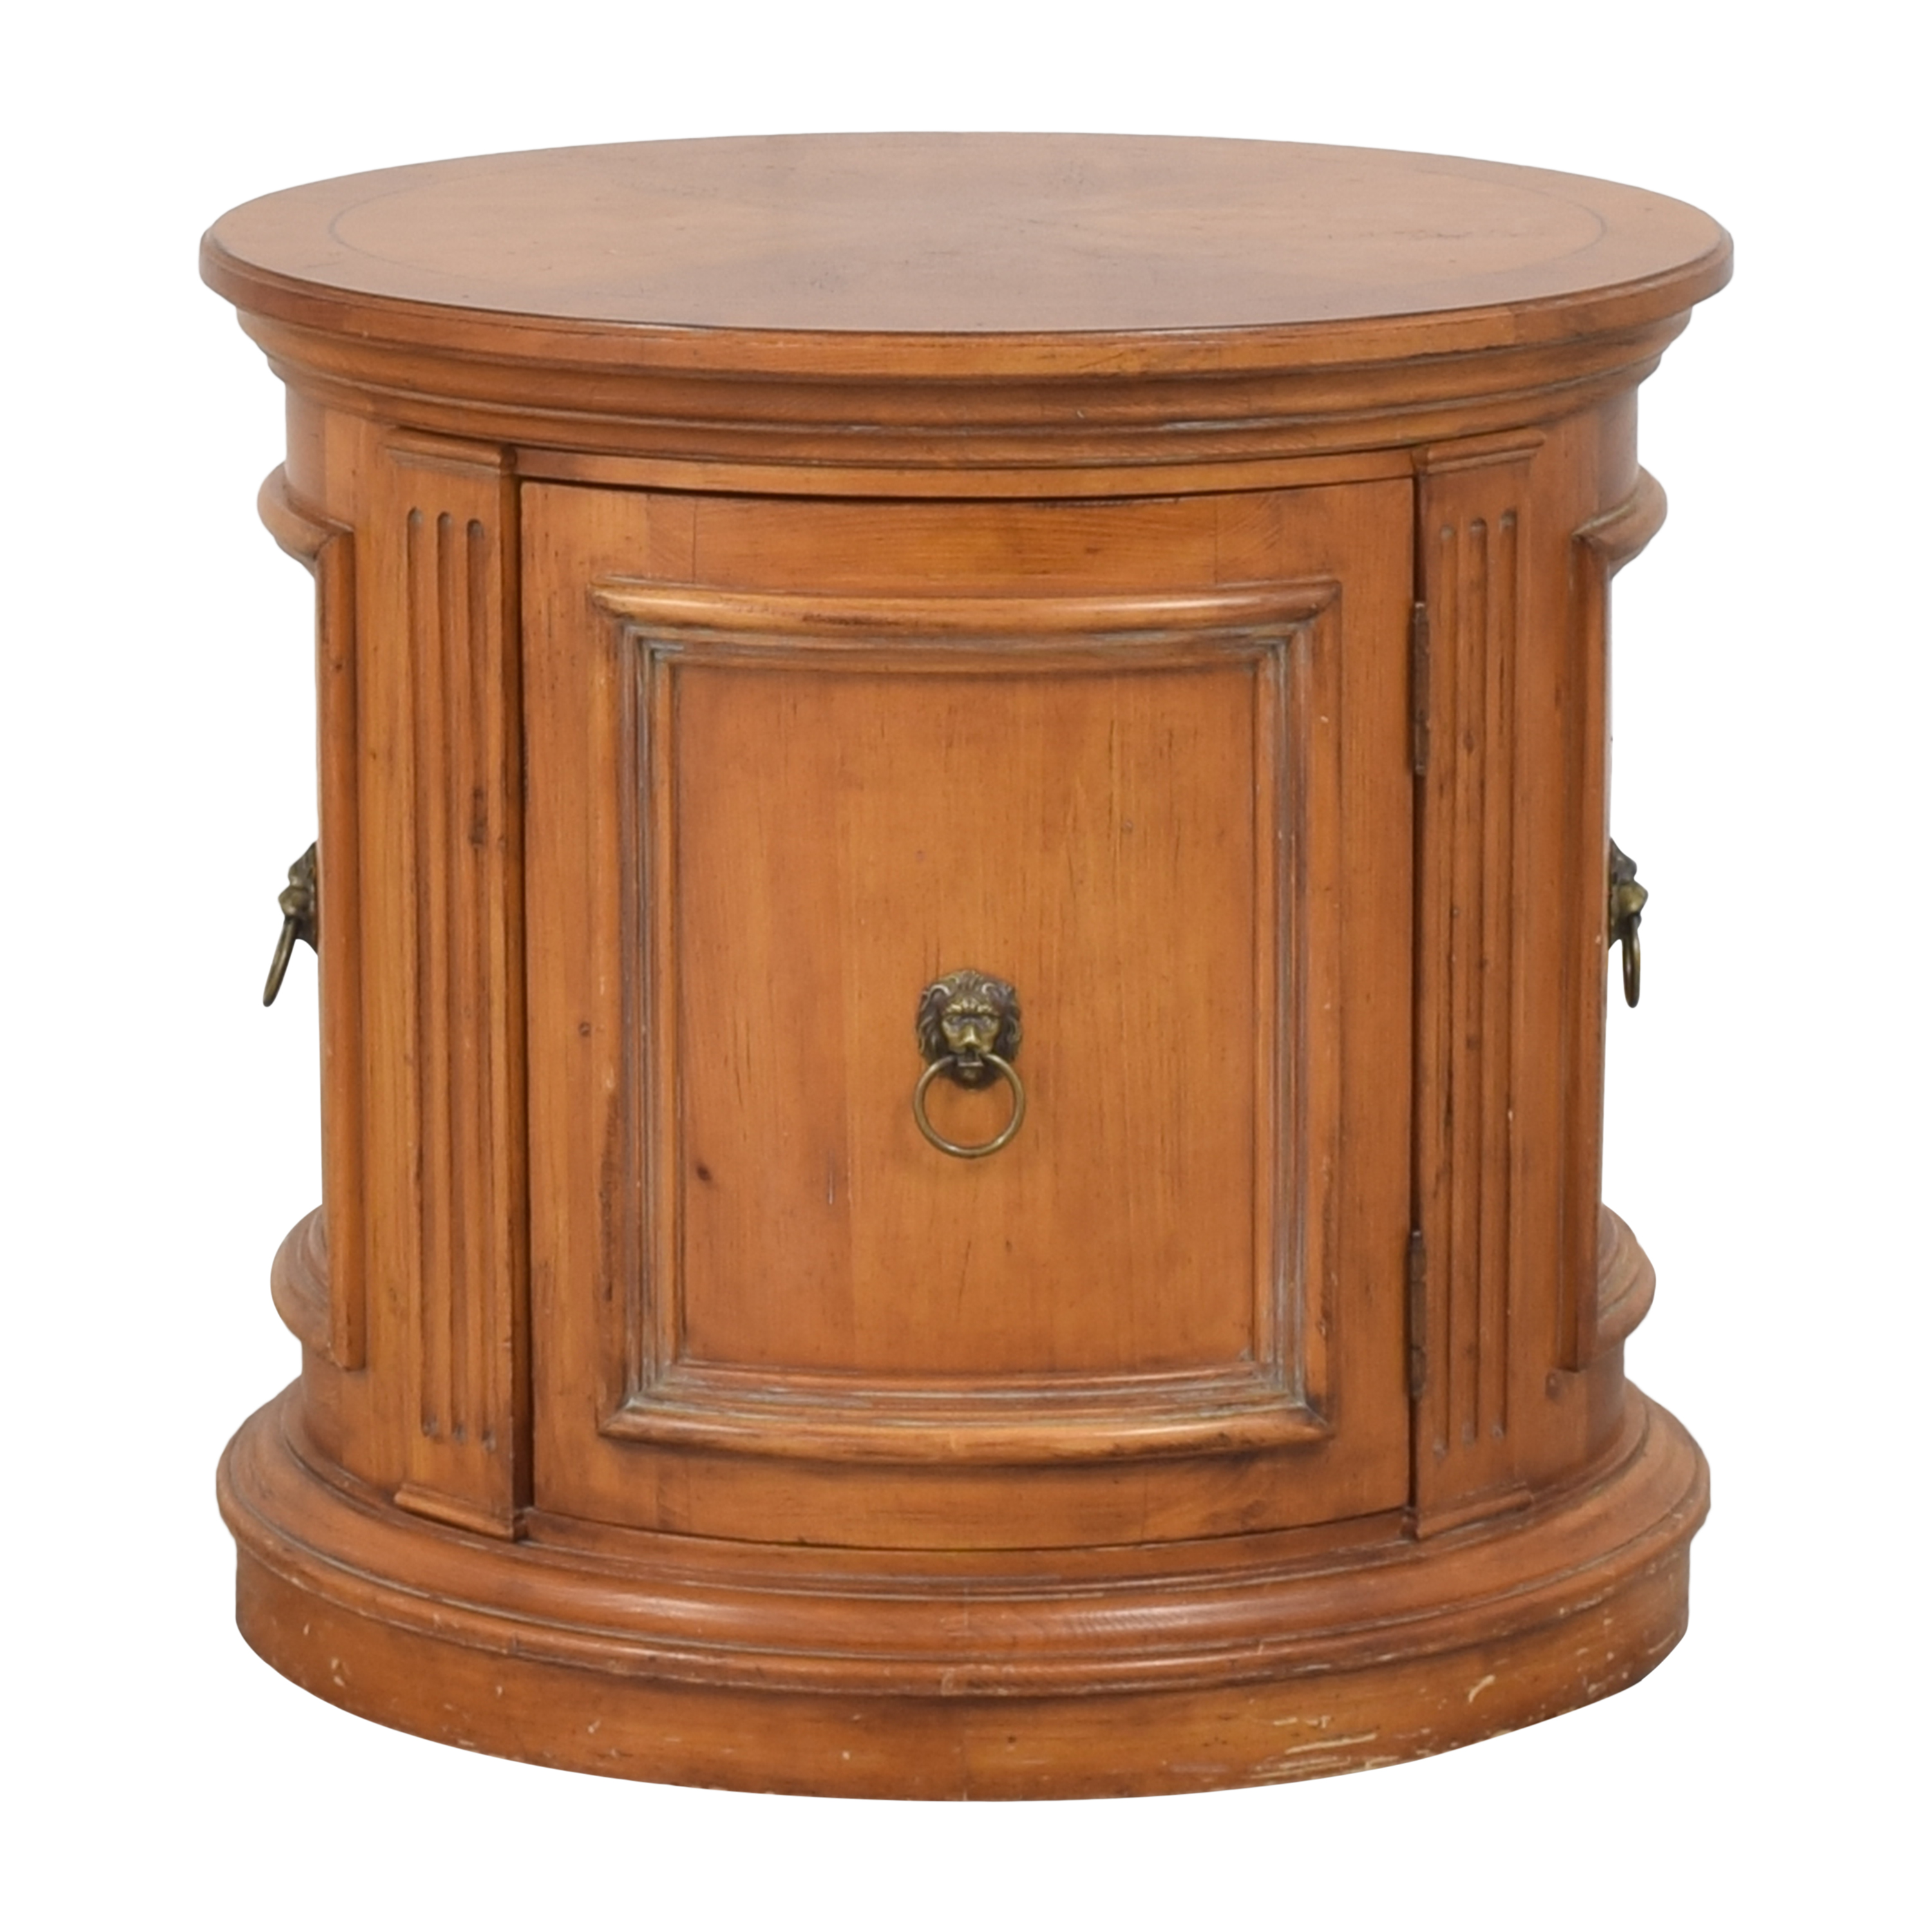 buy Ethan Allen Tuscany Oval Drum End Table Ethan Allen Tables